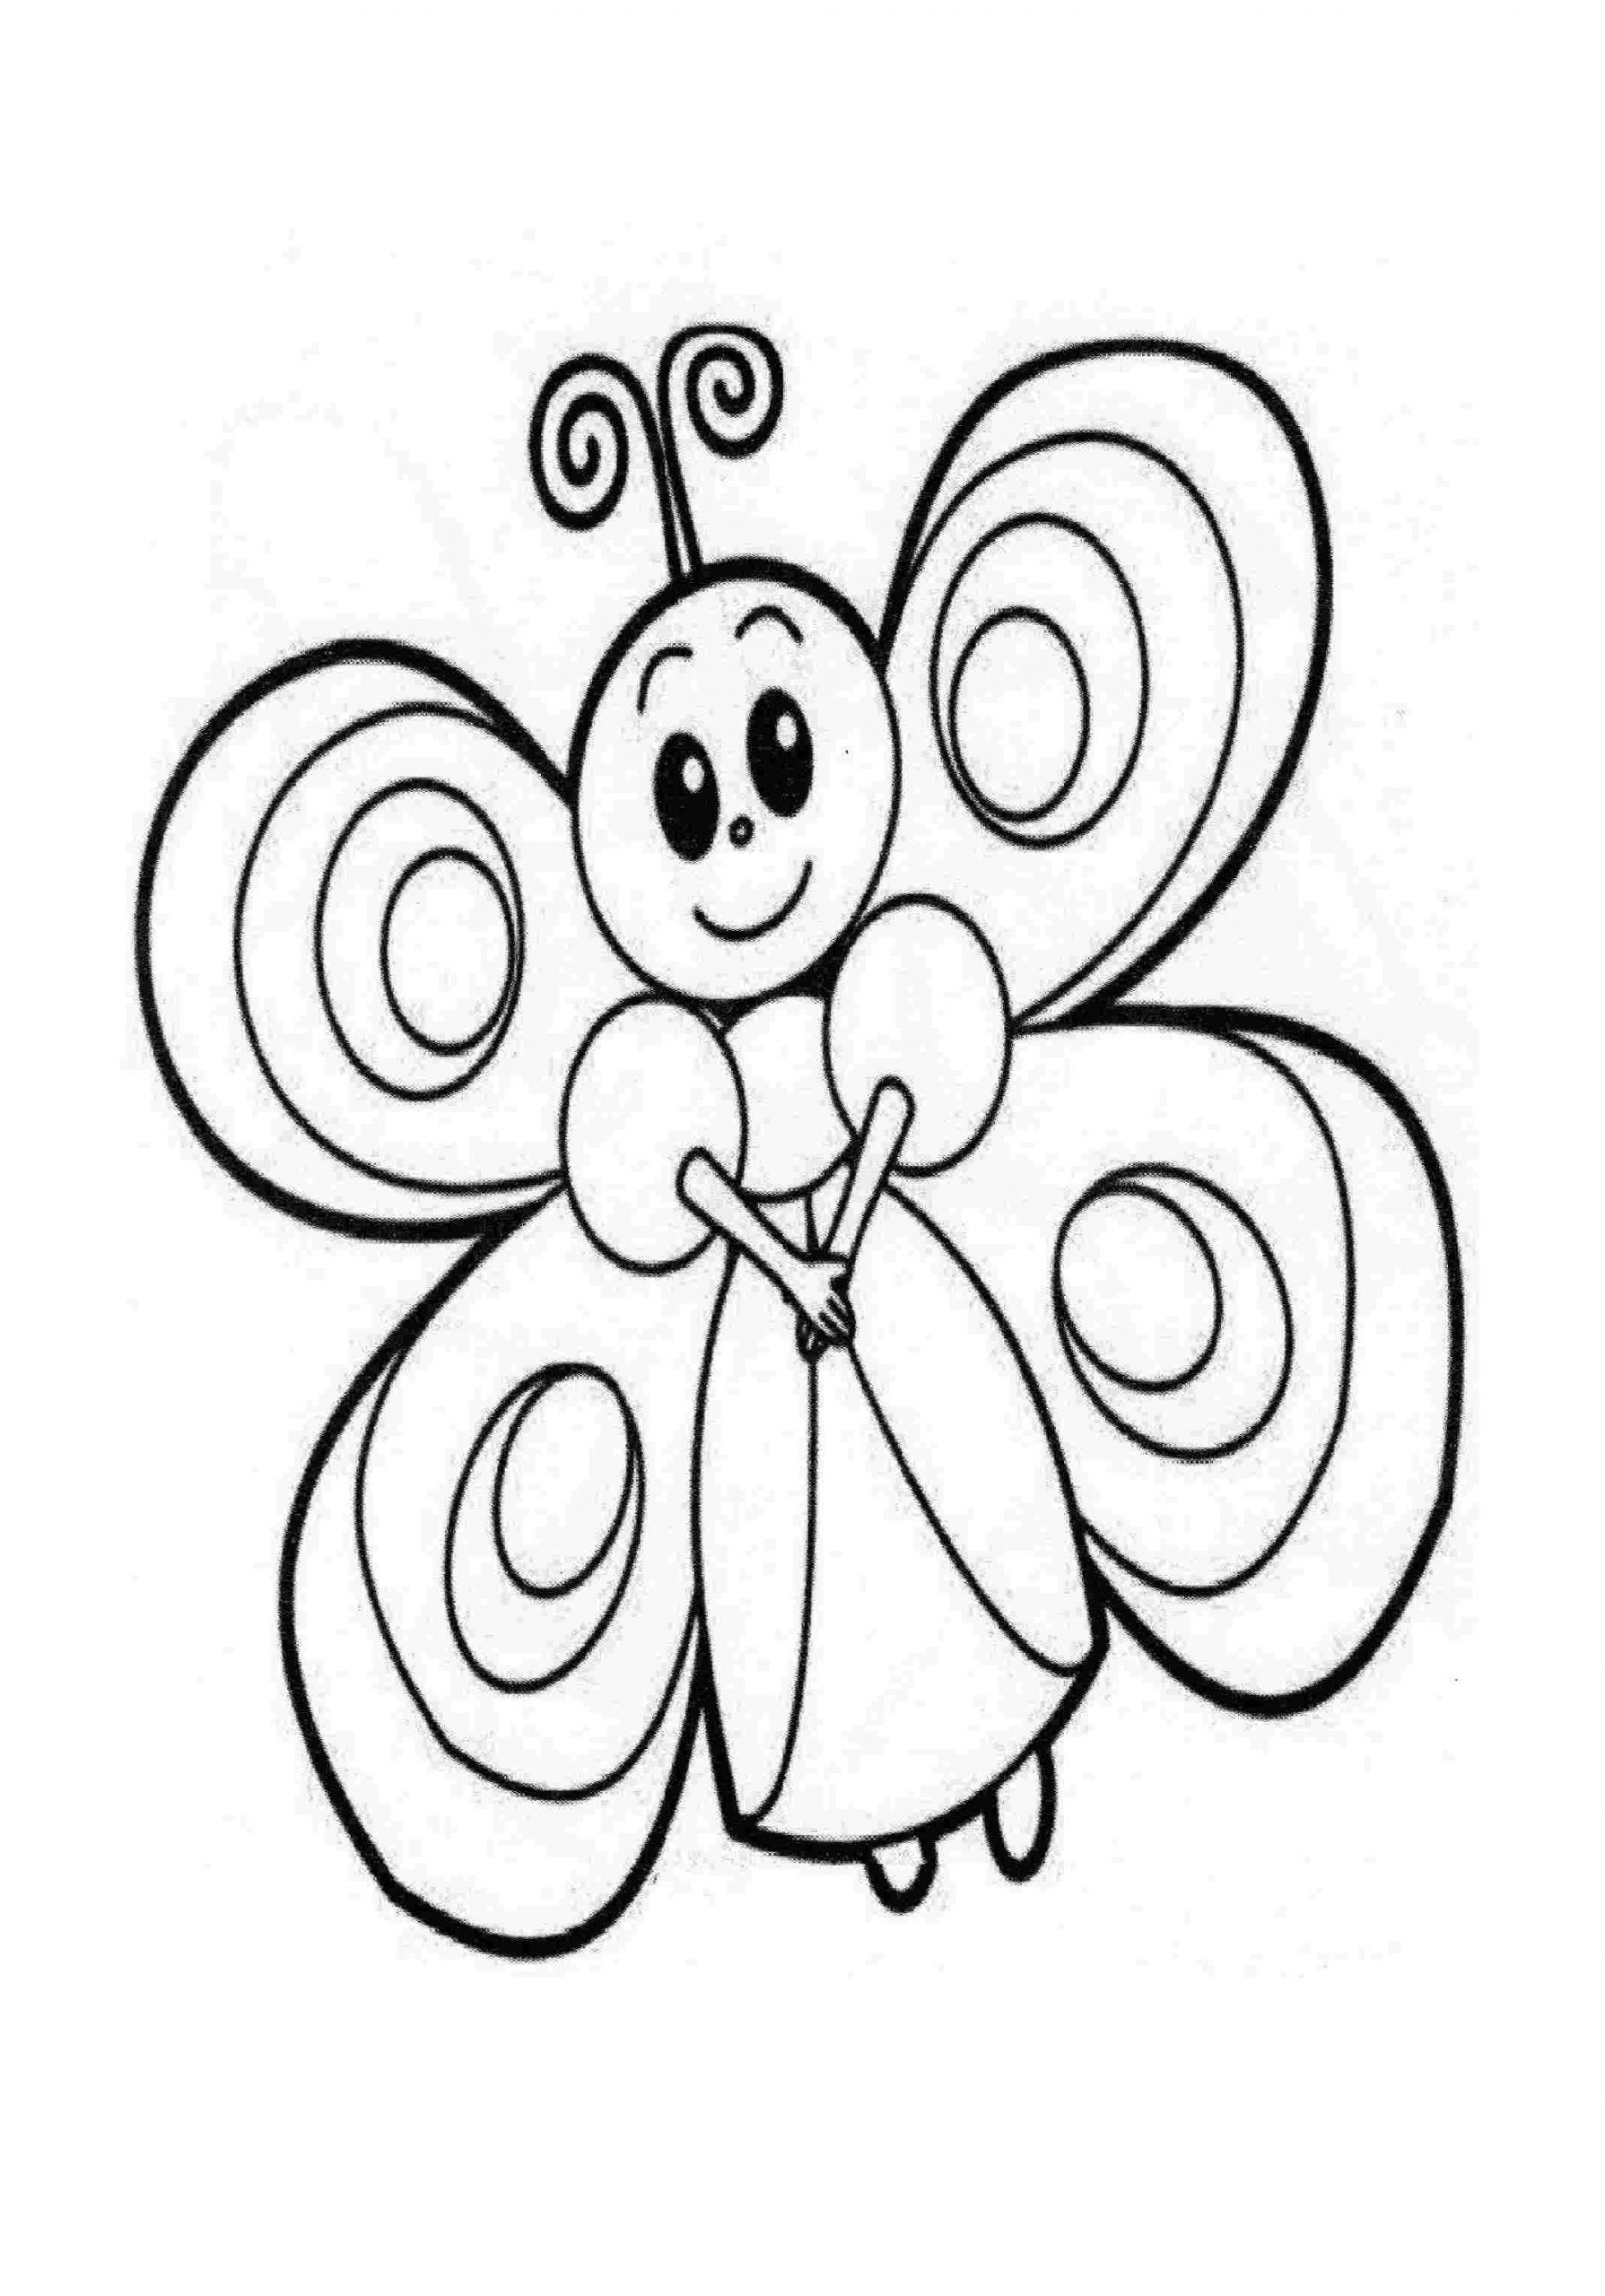 New 50 Free Printable Butterfly Coloring Pages For Kids Online Butterfly Coloring Page Animal Coloring Pages Coloring Pages [ 2560 x 1789 Pixel ]